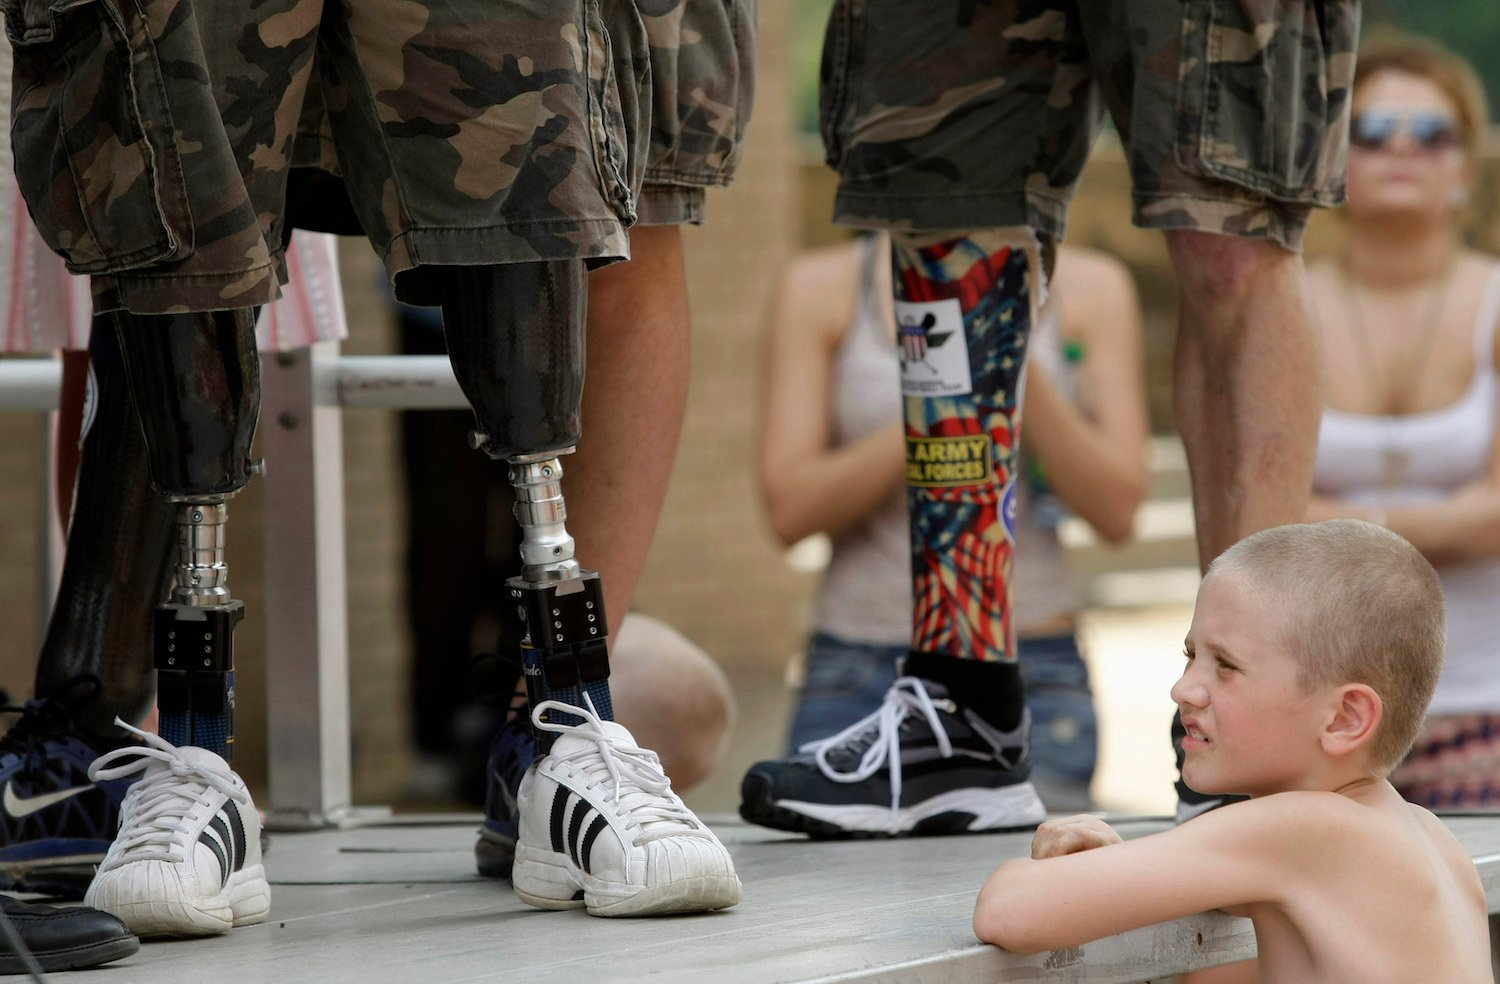 A child looks at the prosthetic legs of Wounded Warrior Amputee. REUTERS/Gary Cameron/Files